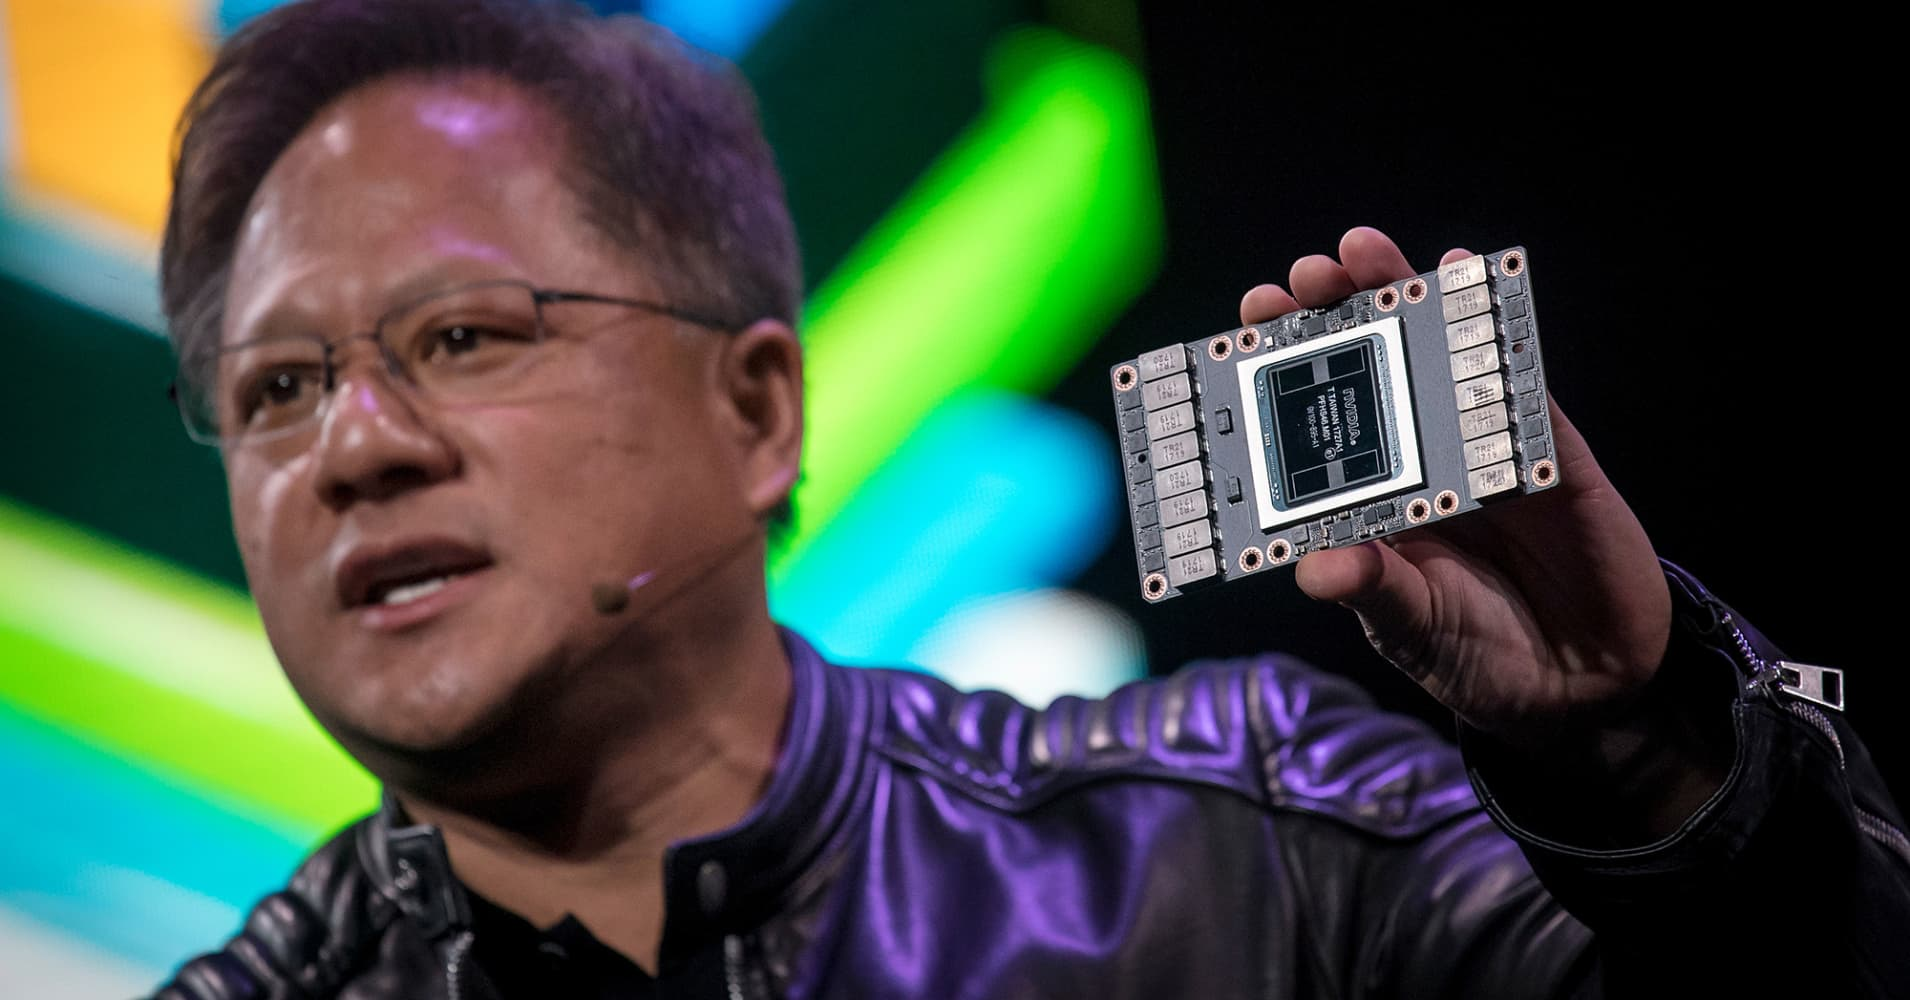 Nvidia tumbles 19% after missing on revenue and guidance